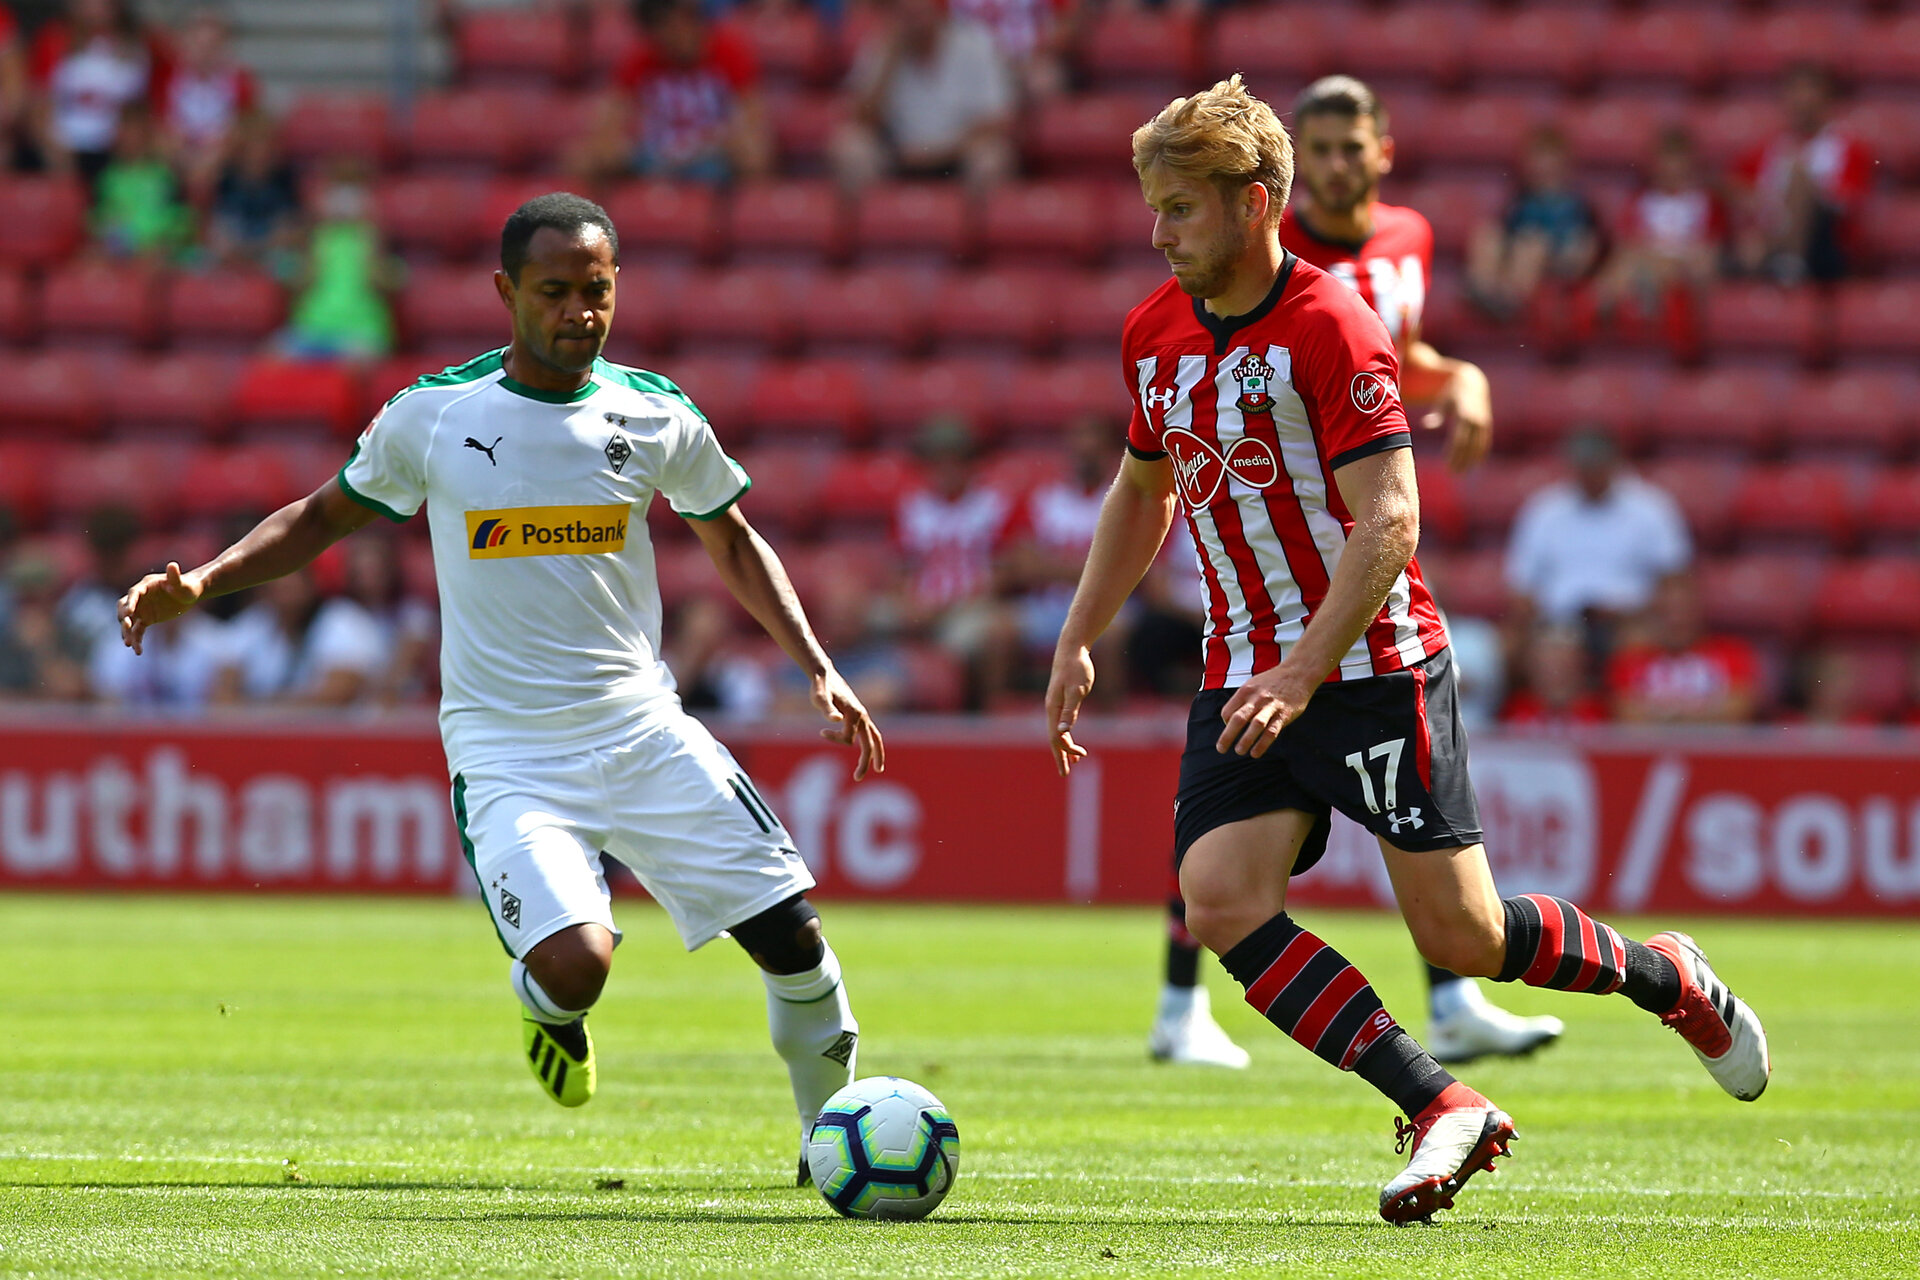 SOUTHAMPTON, ENGLAND - AUGUST 04: Stuart Armstrong (right) of Southampton FC during the Pre-Season friendly match between Southampton FC and Borussia Mšnchengladbach pictured at St Mary's Stadium on August 4, 2018 in Southampton, England. (Photo by James Bridle - Southampton FC/Southampton FC via Getty Images) SOUTHAMPTON, ENGLAND - AUGUST 04: Stuart Armstrong (right) of Southampton FC during the Pre-Season friendly match between Southampton FC and Borussia Mönchengladbach pictured at St Mary's Stadium on August 4, 2018 in Southampton, England. (Photo by James Bridle - Southampton FC/Southampton FC via Getty Images)